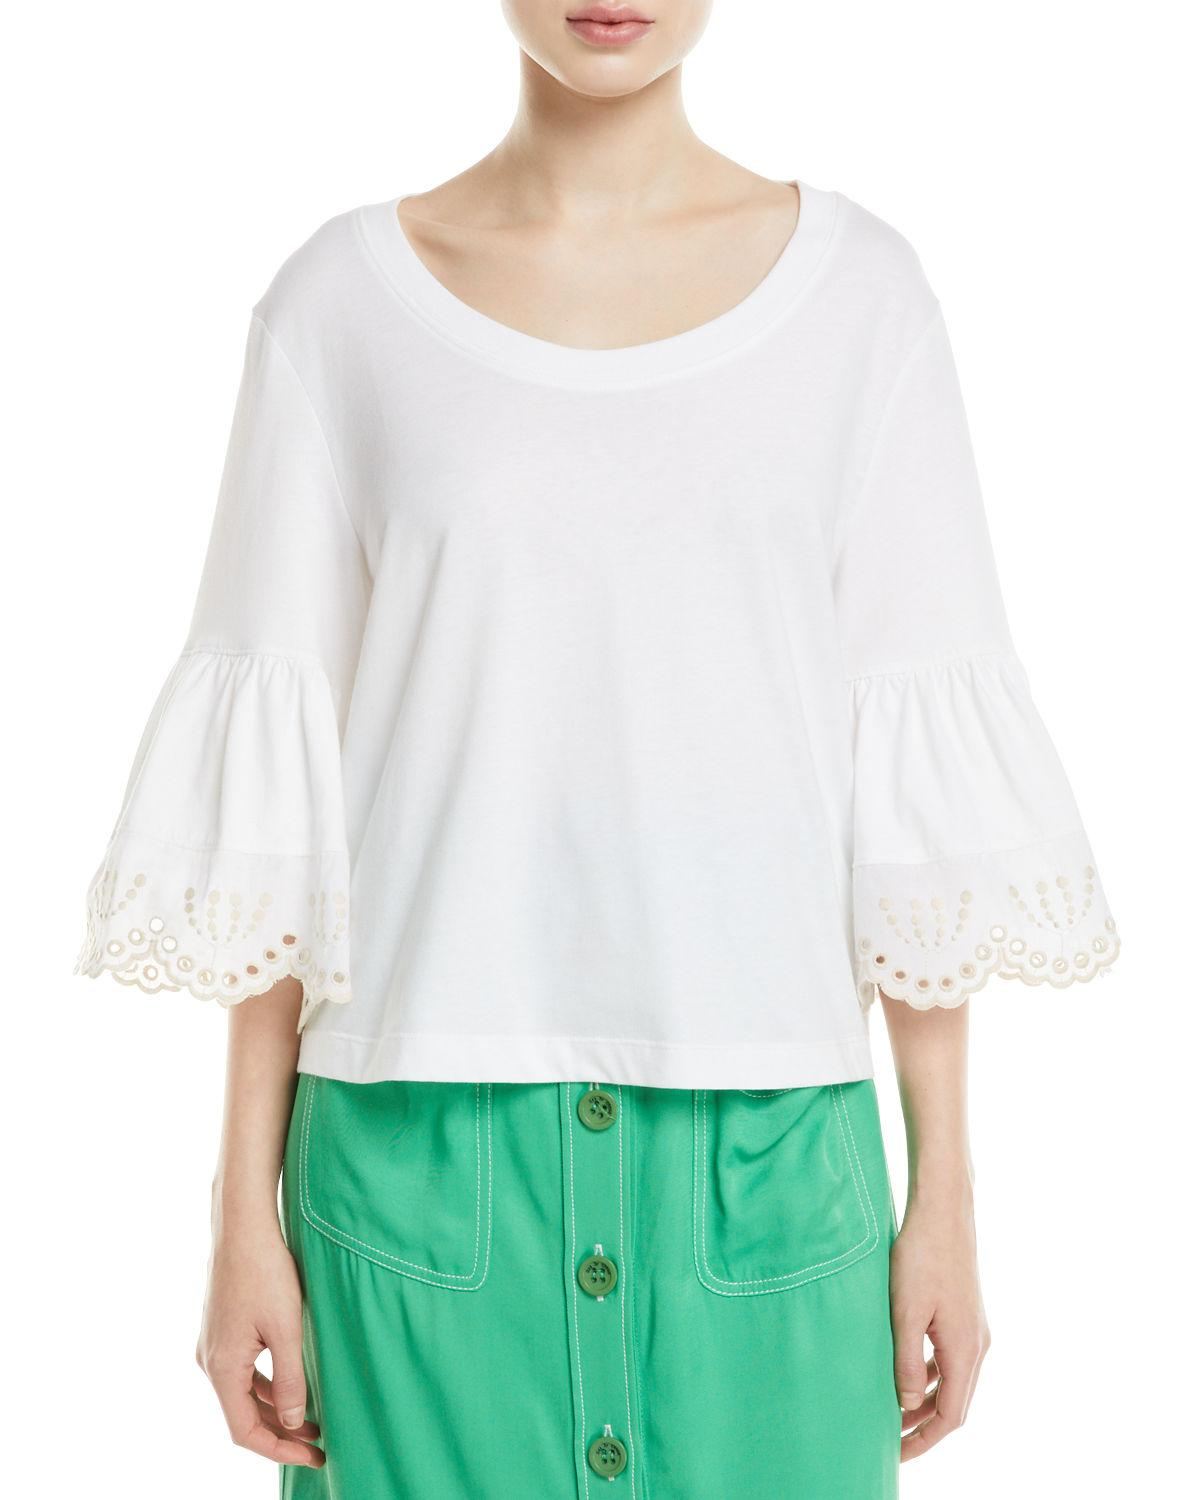 6c1a00f16af93 Lyst - See By Chloé Lace-cuff Cotton Top in White